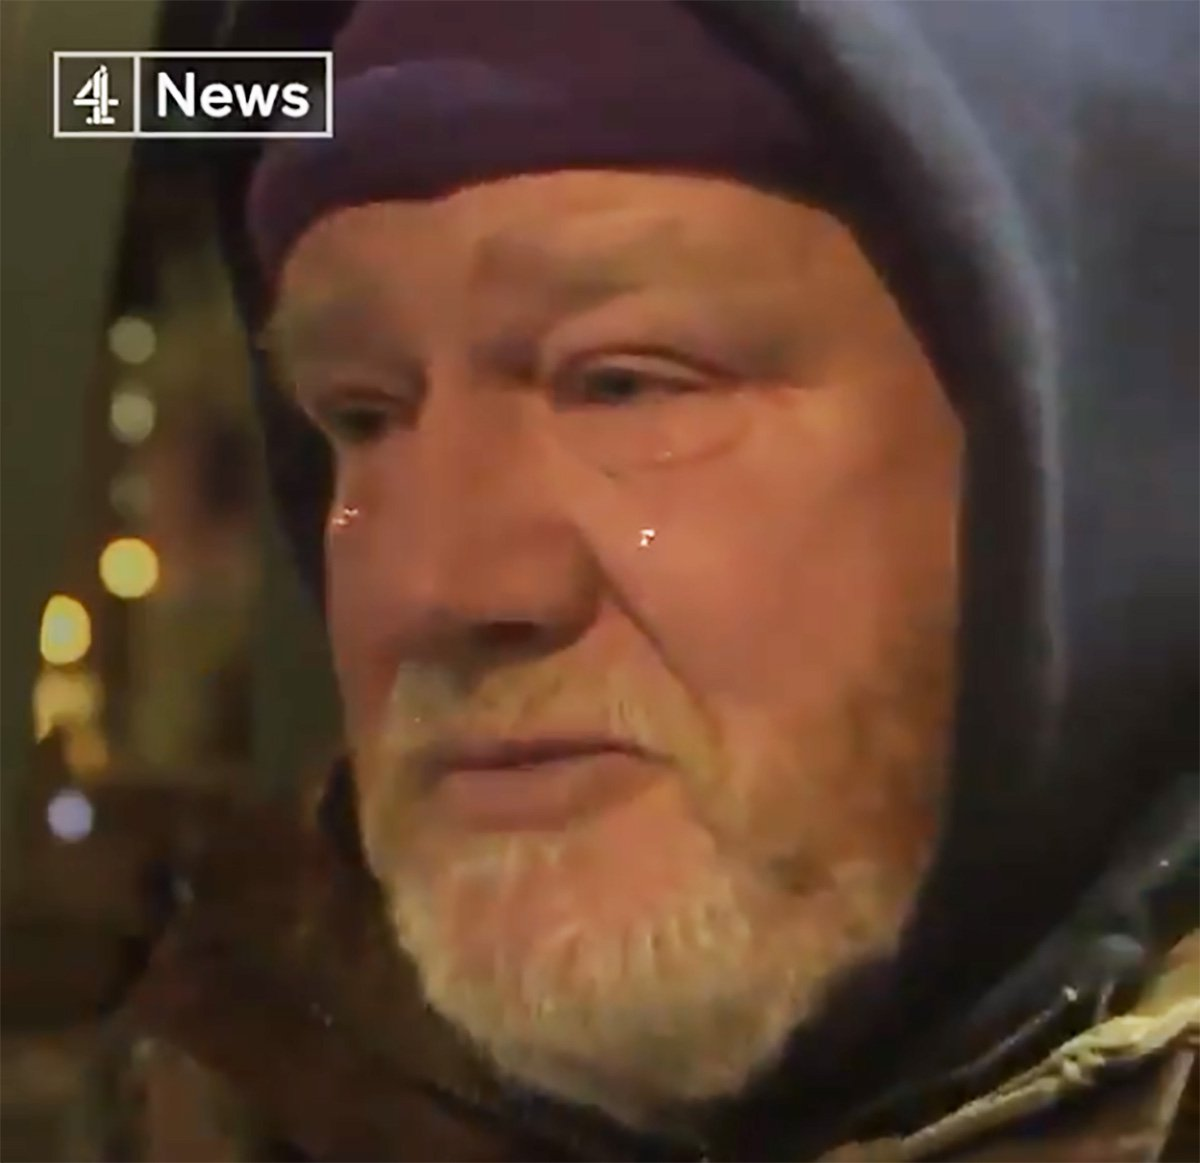 Soldier in Corbyn xmas homeless video tried to rape a 87-year-old woman Credit: Channel 4